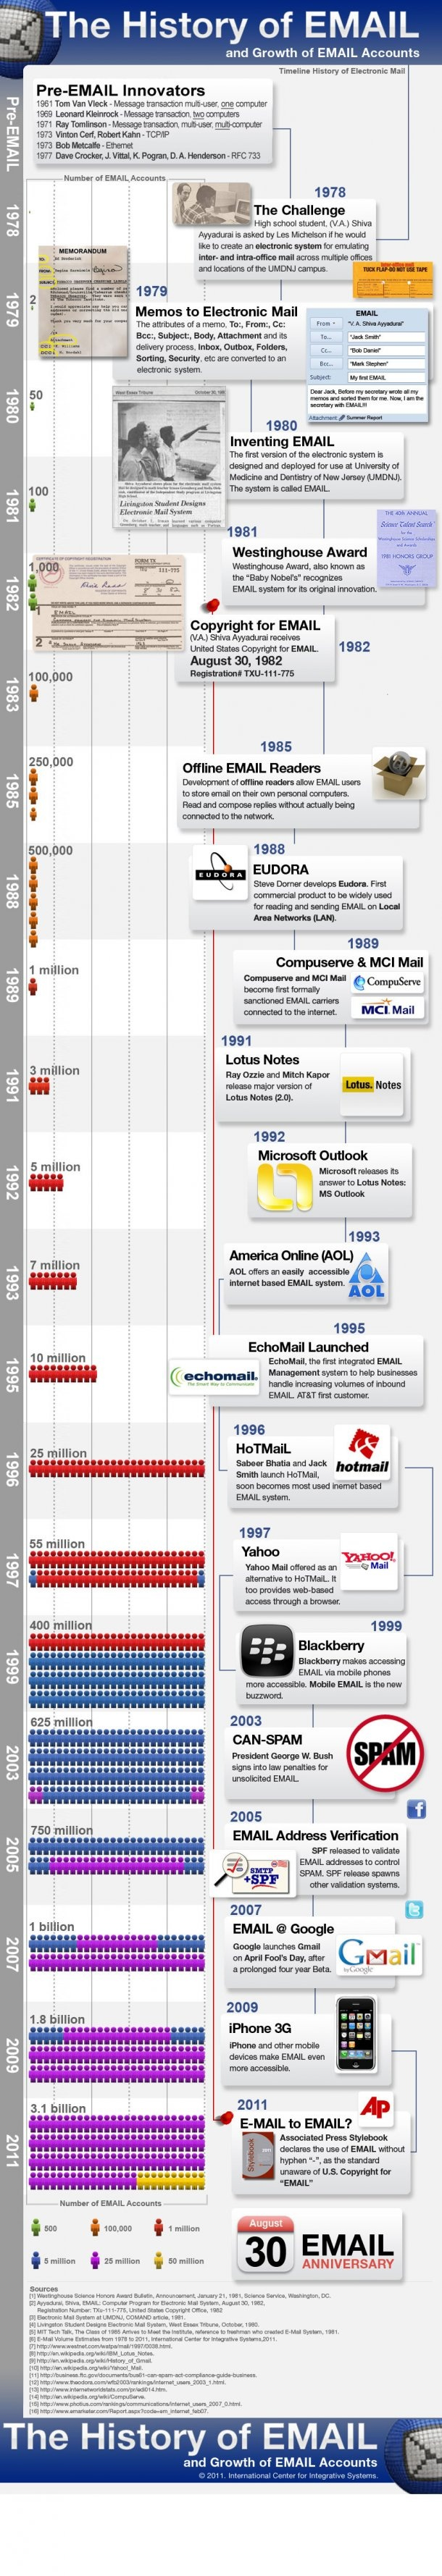 The History Of Email And Growth Of Email Accounts